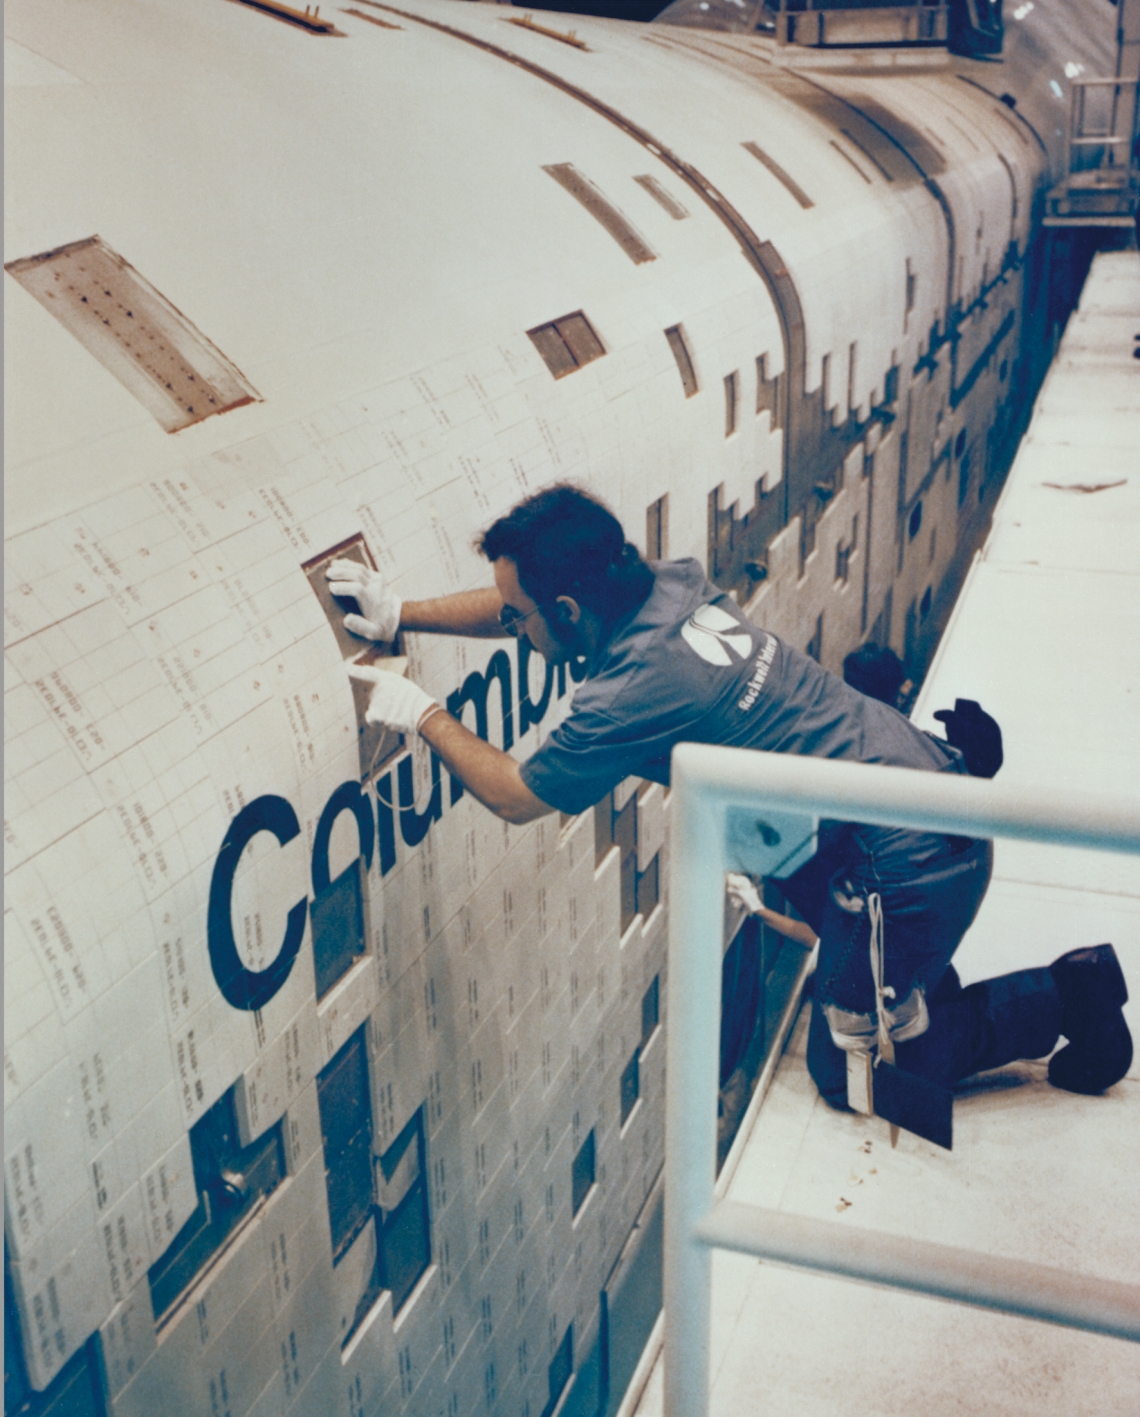 A technician mounting a thermal protection tile on the Space Shuttle Columbia in 1980, around 20 years before Eva started work as a tile technician. (Photo credit: NASA)